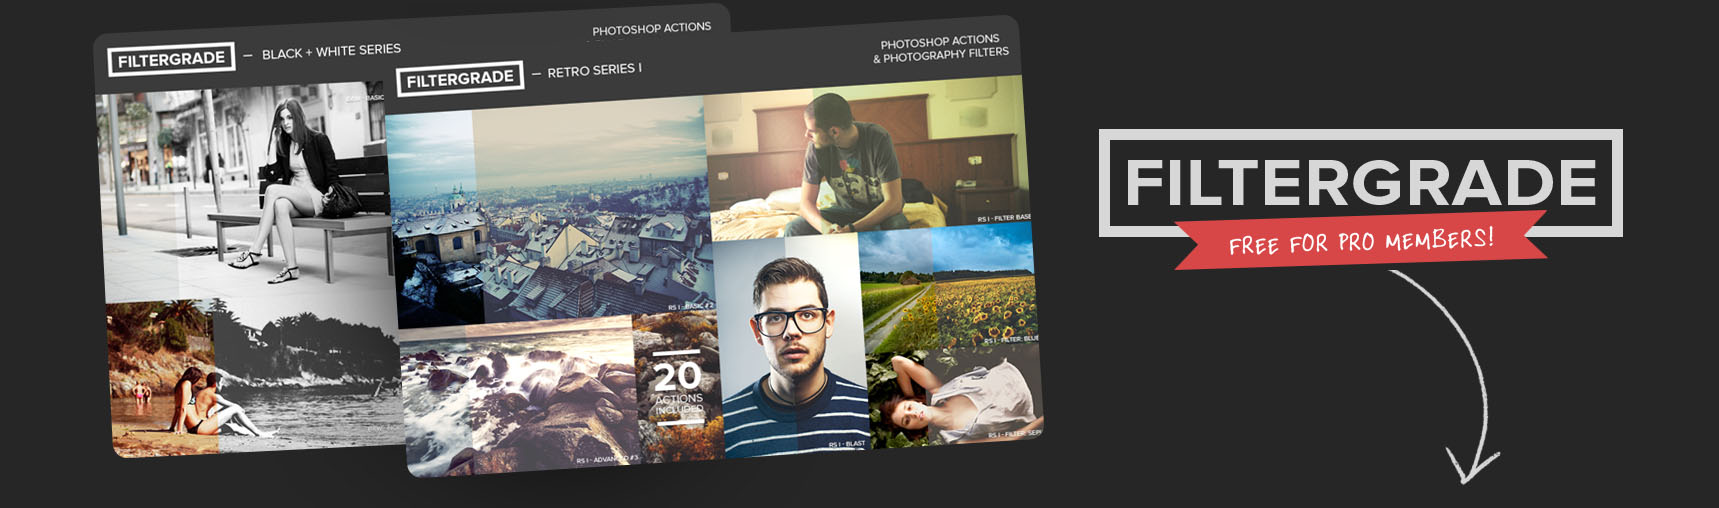 Free Photography Actions for PRO Members by FilterGrade